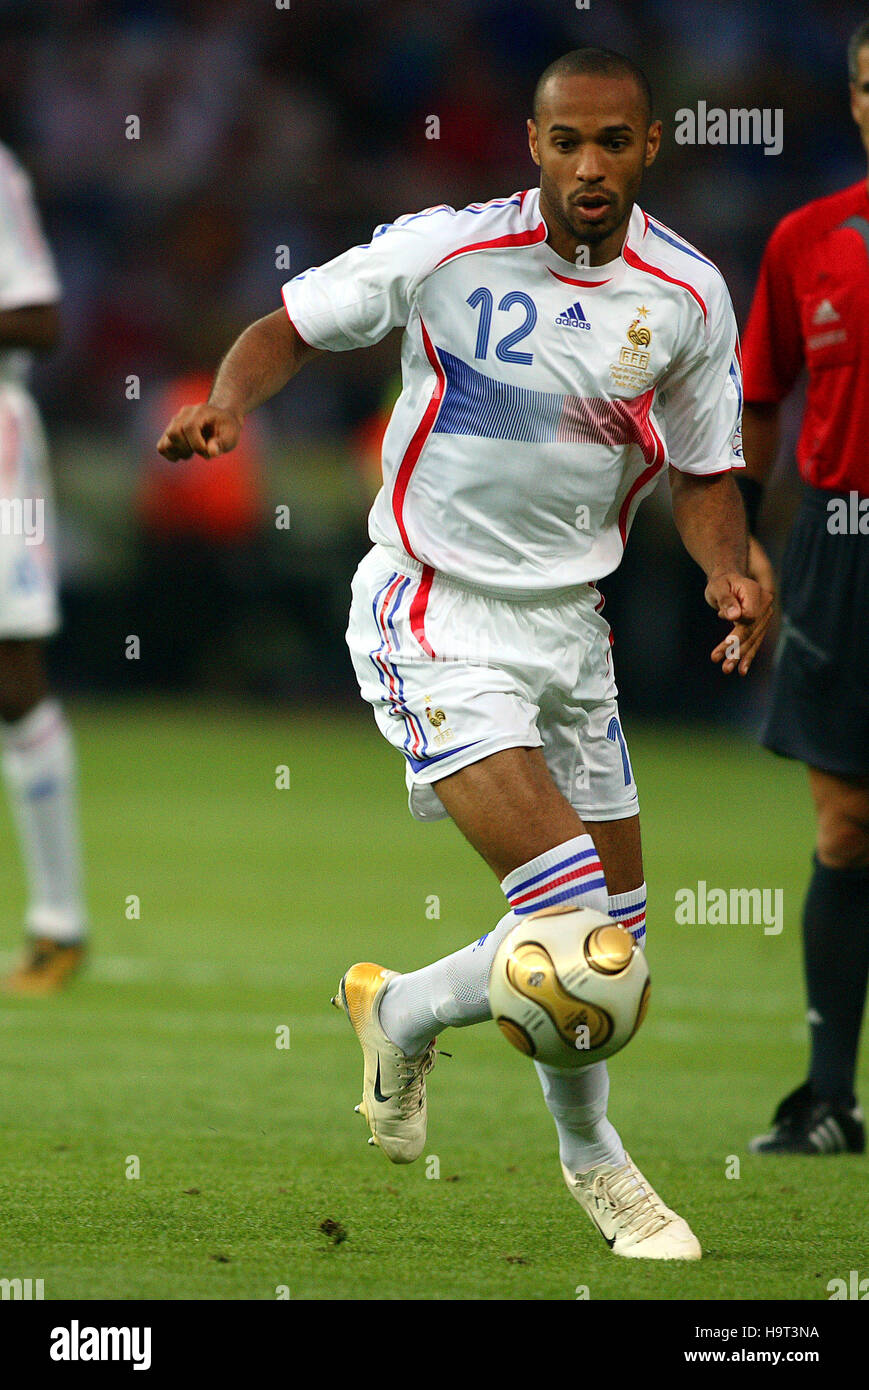 c36d8f013 THIERRY HENRY FRANCE   ARSENAL FC OLYMPIC STADIUM BERLIN GERMANY 09 July  2006